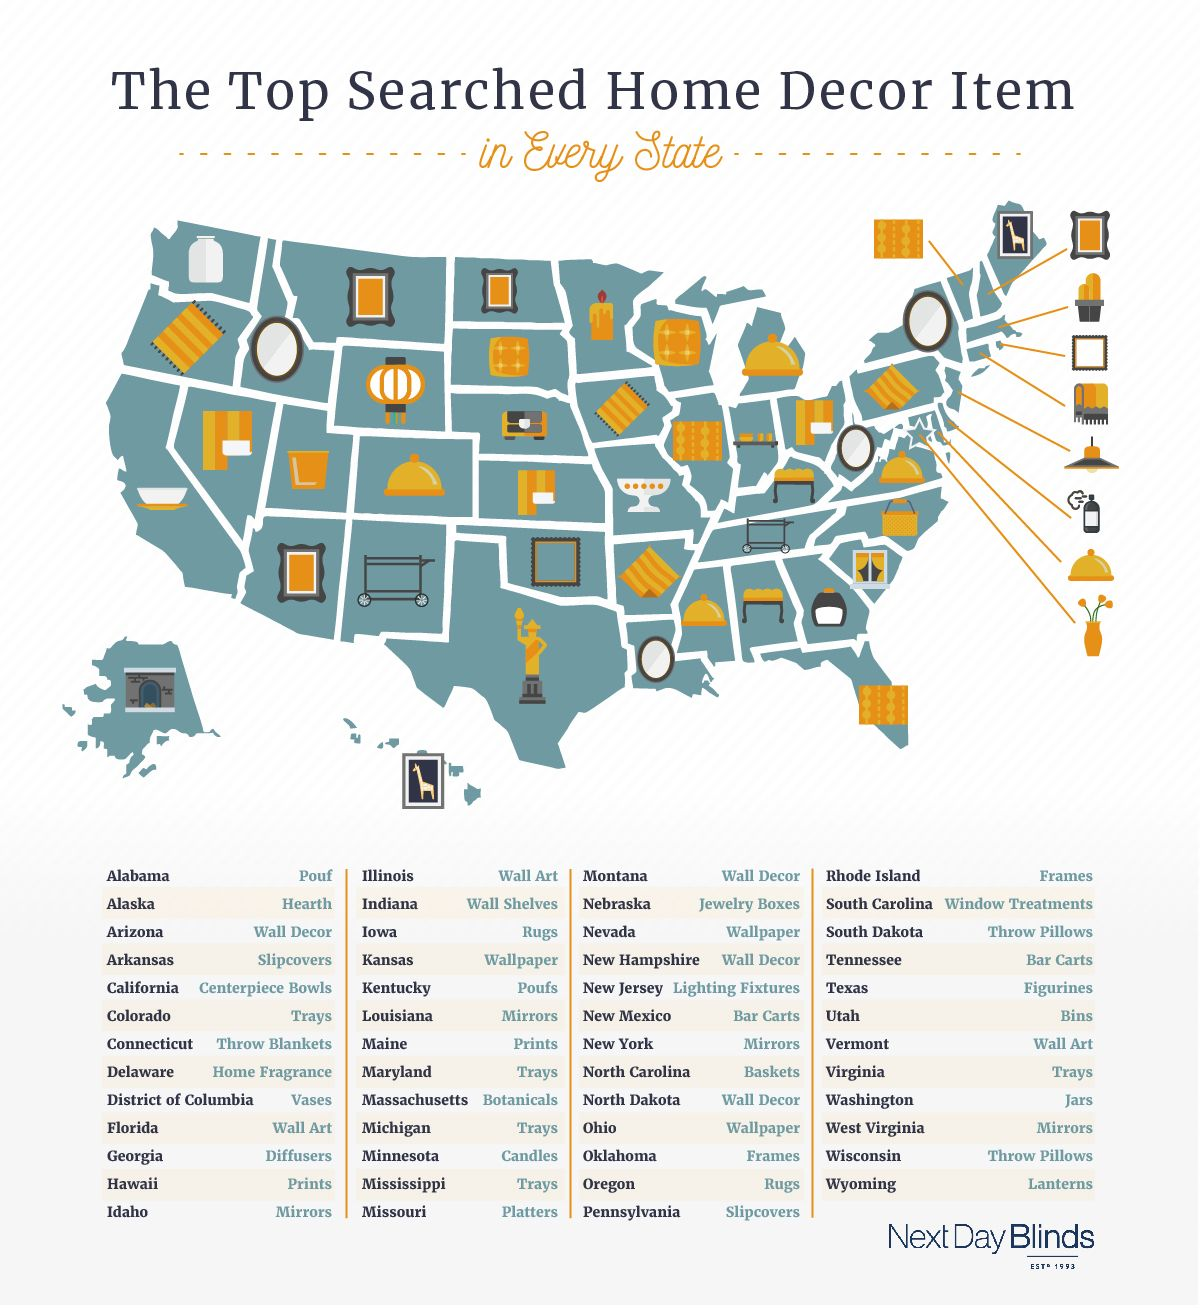 What S Your State S Favorite Home Accessory Centerpiece Bowls Trays Throw Blankets Vases Or More Take A L Home Decor Items Trending Decor Decorative Items